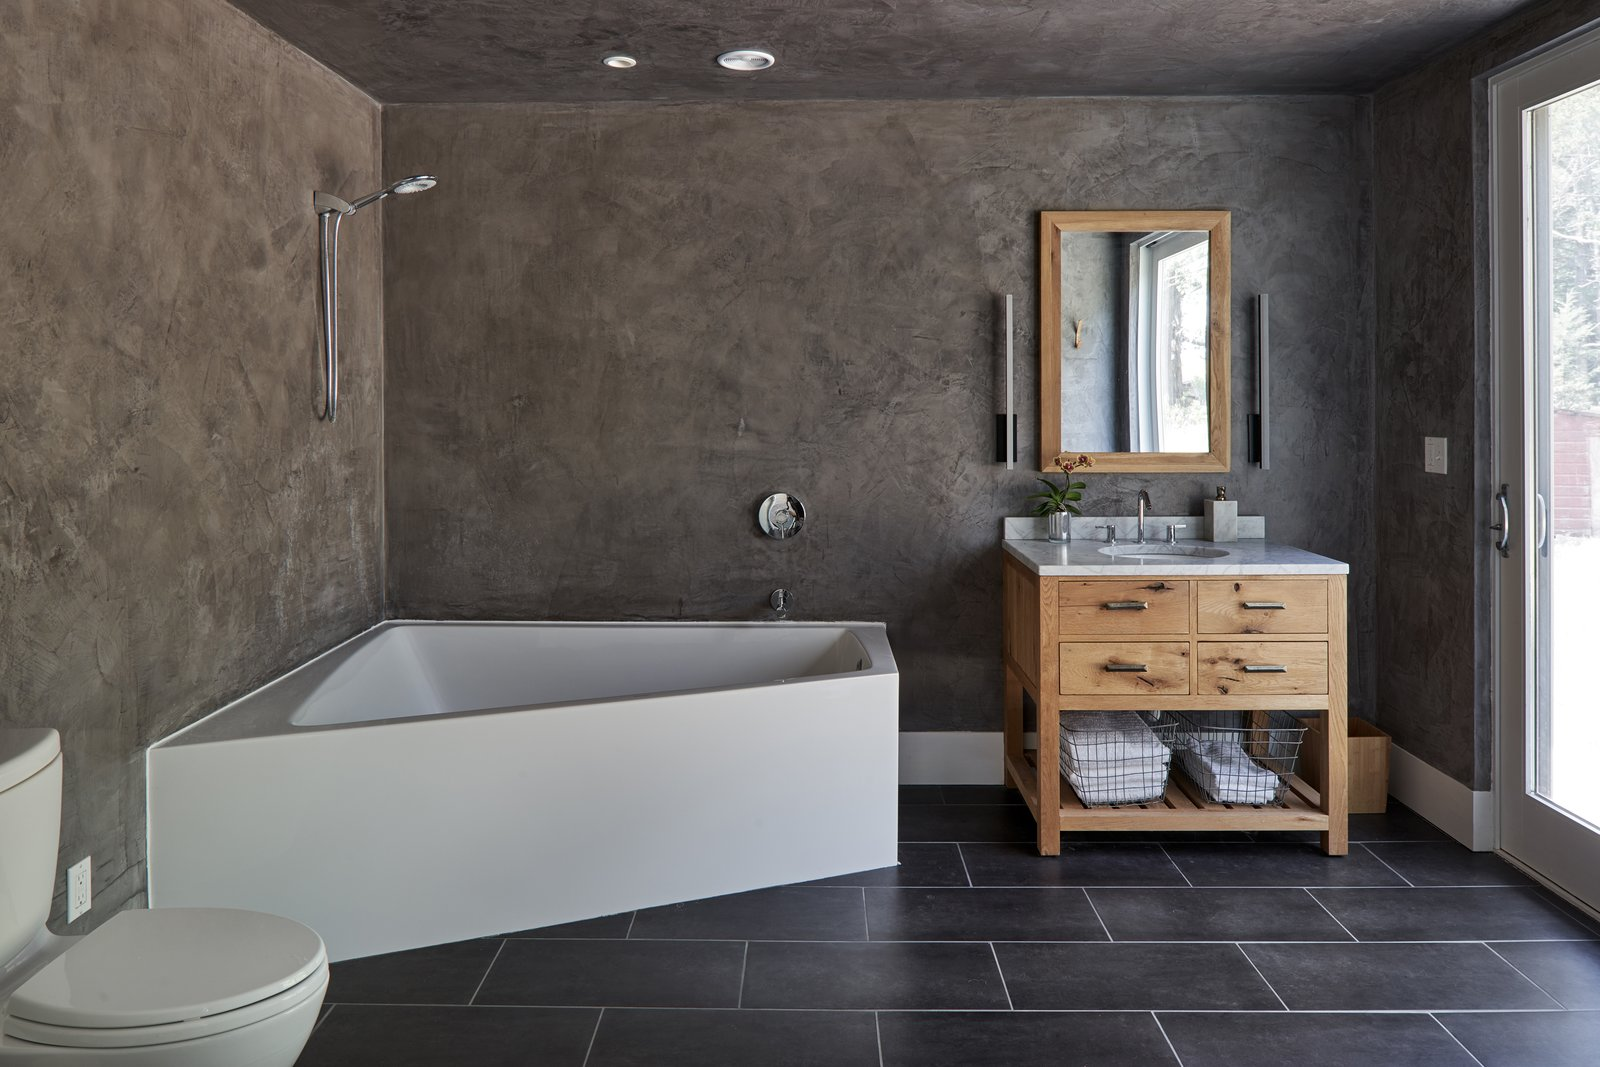 Bath, Undermount, and Alcove  Bath Undermount Alcove Photos from A Limestone Cottage in Kansas Is Reborn With a Corrugated Steel Addition